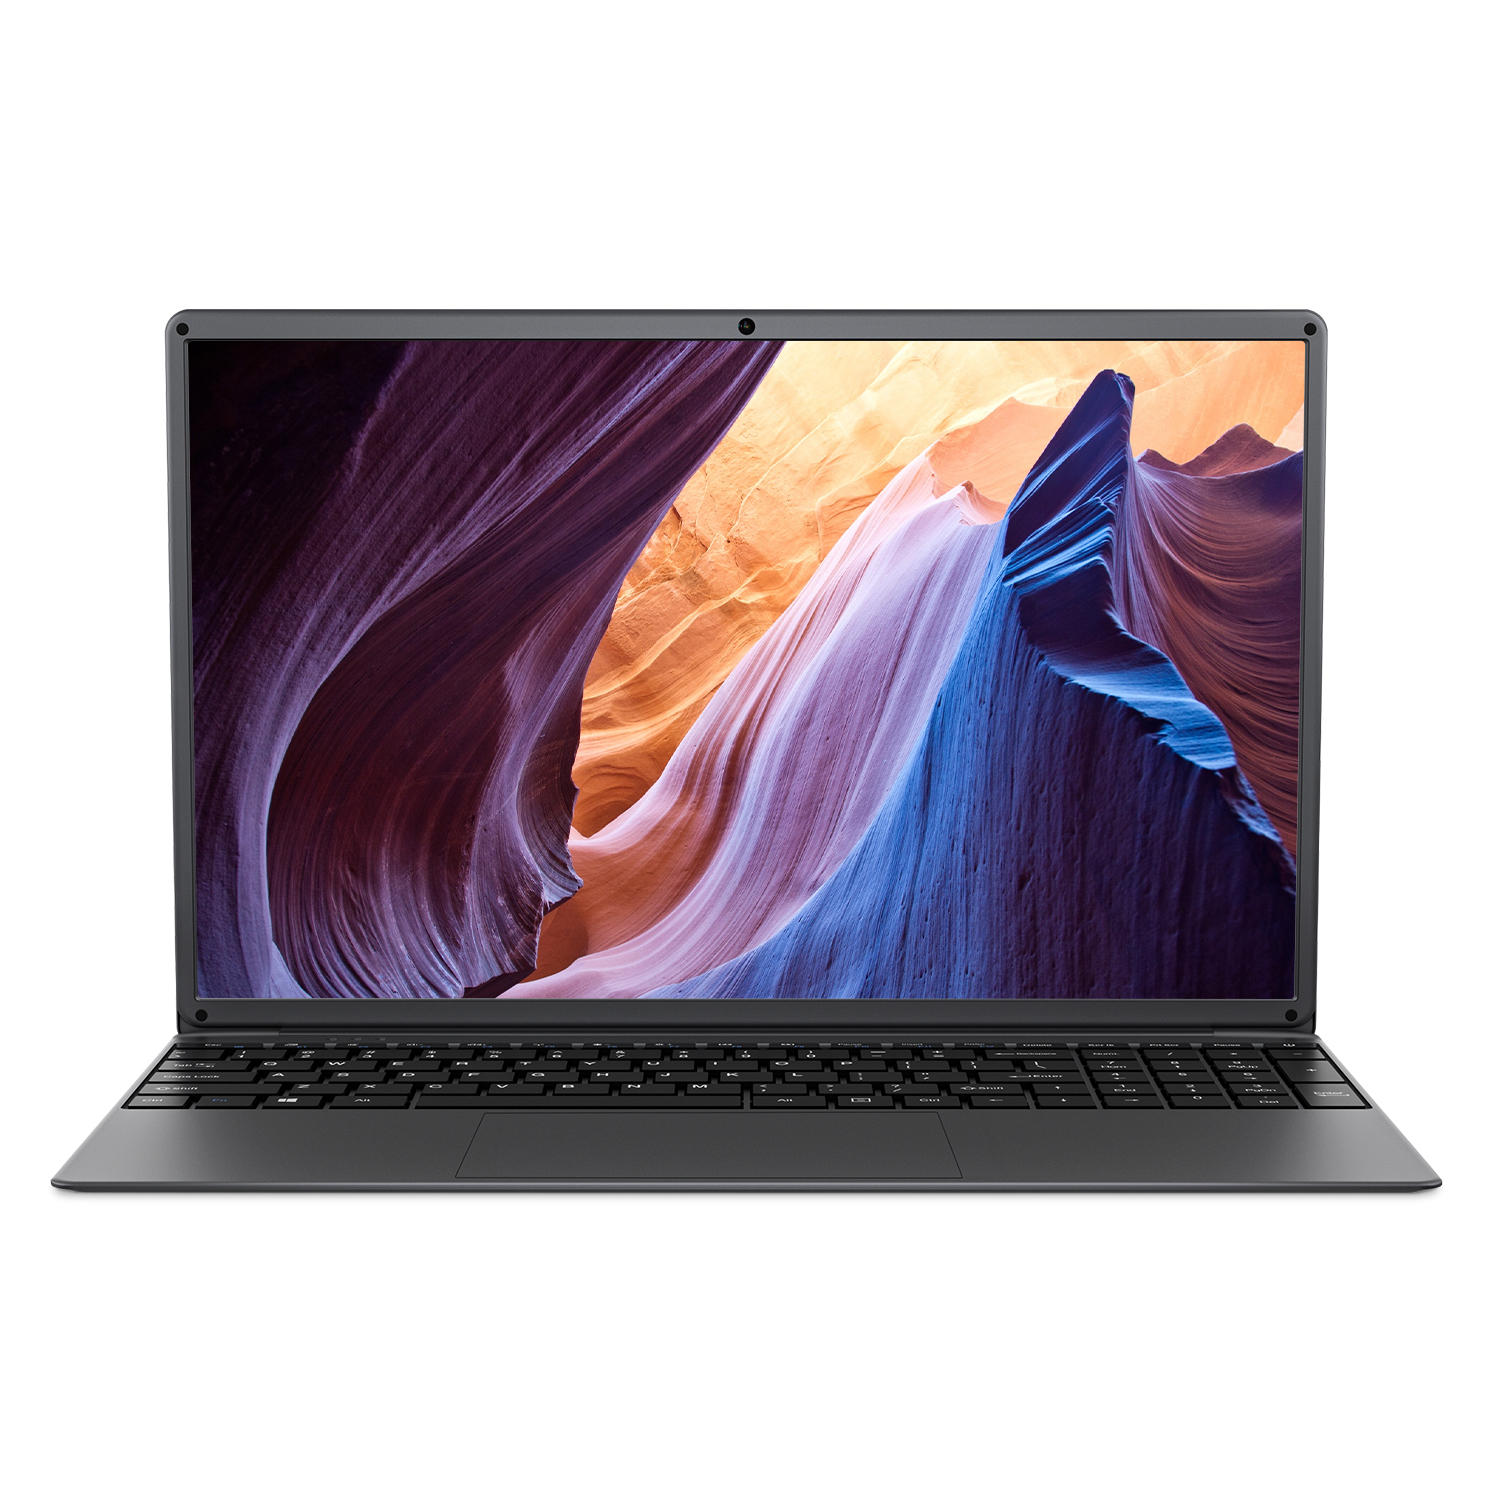 BMAX S15 Laptop 15.6 inch Intel Gemini Lake N4100 Intel UHD Graphics 600 8GB LPDDR4 RAM 128GB SSD 178° Viewing Angle Narrow Bezel Notebook